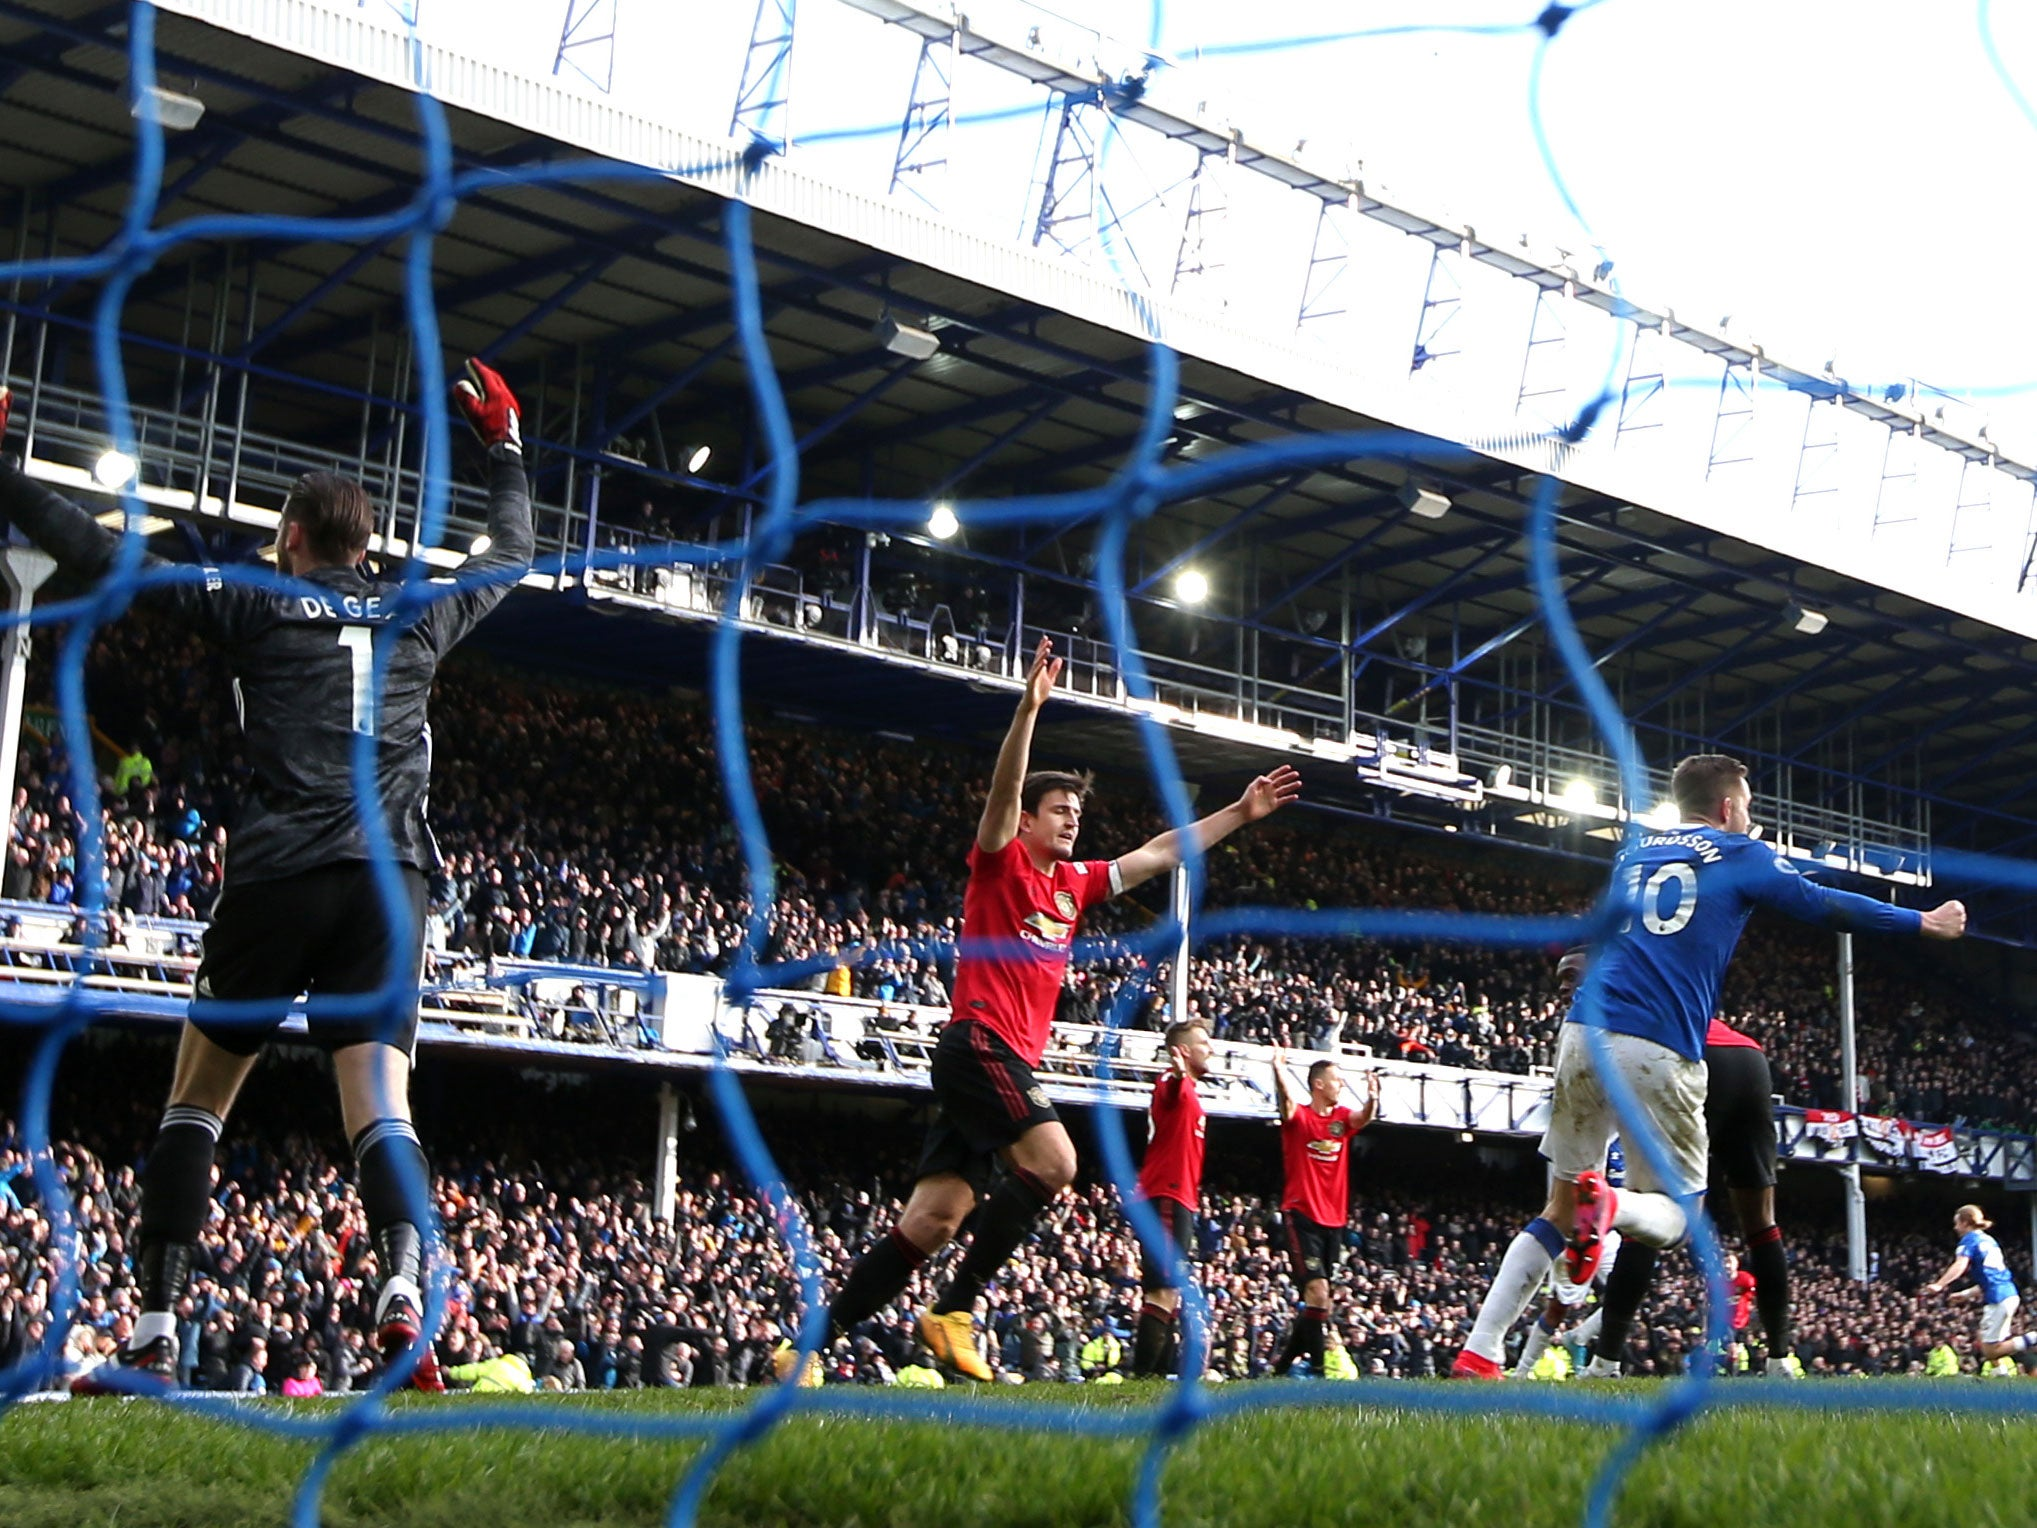 Everton Vs Manchester United Premier League Confirm Why Var Ruled Out Dominic Calvert Lewin Goal The Independent The Independent